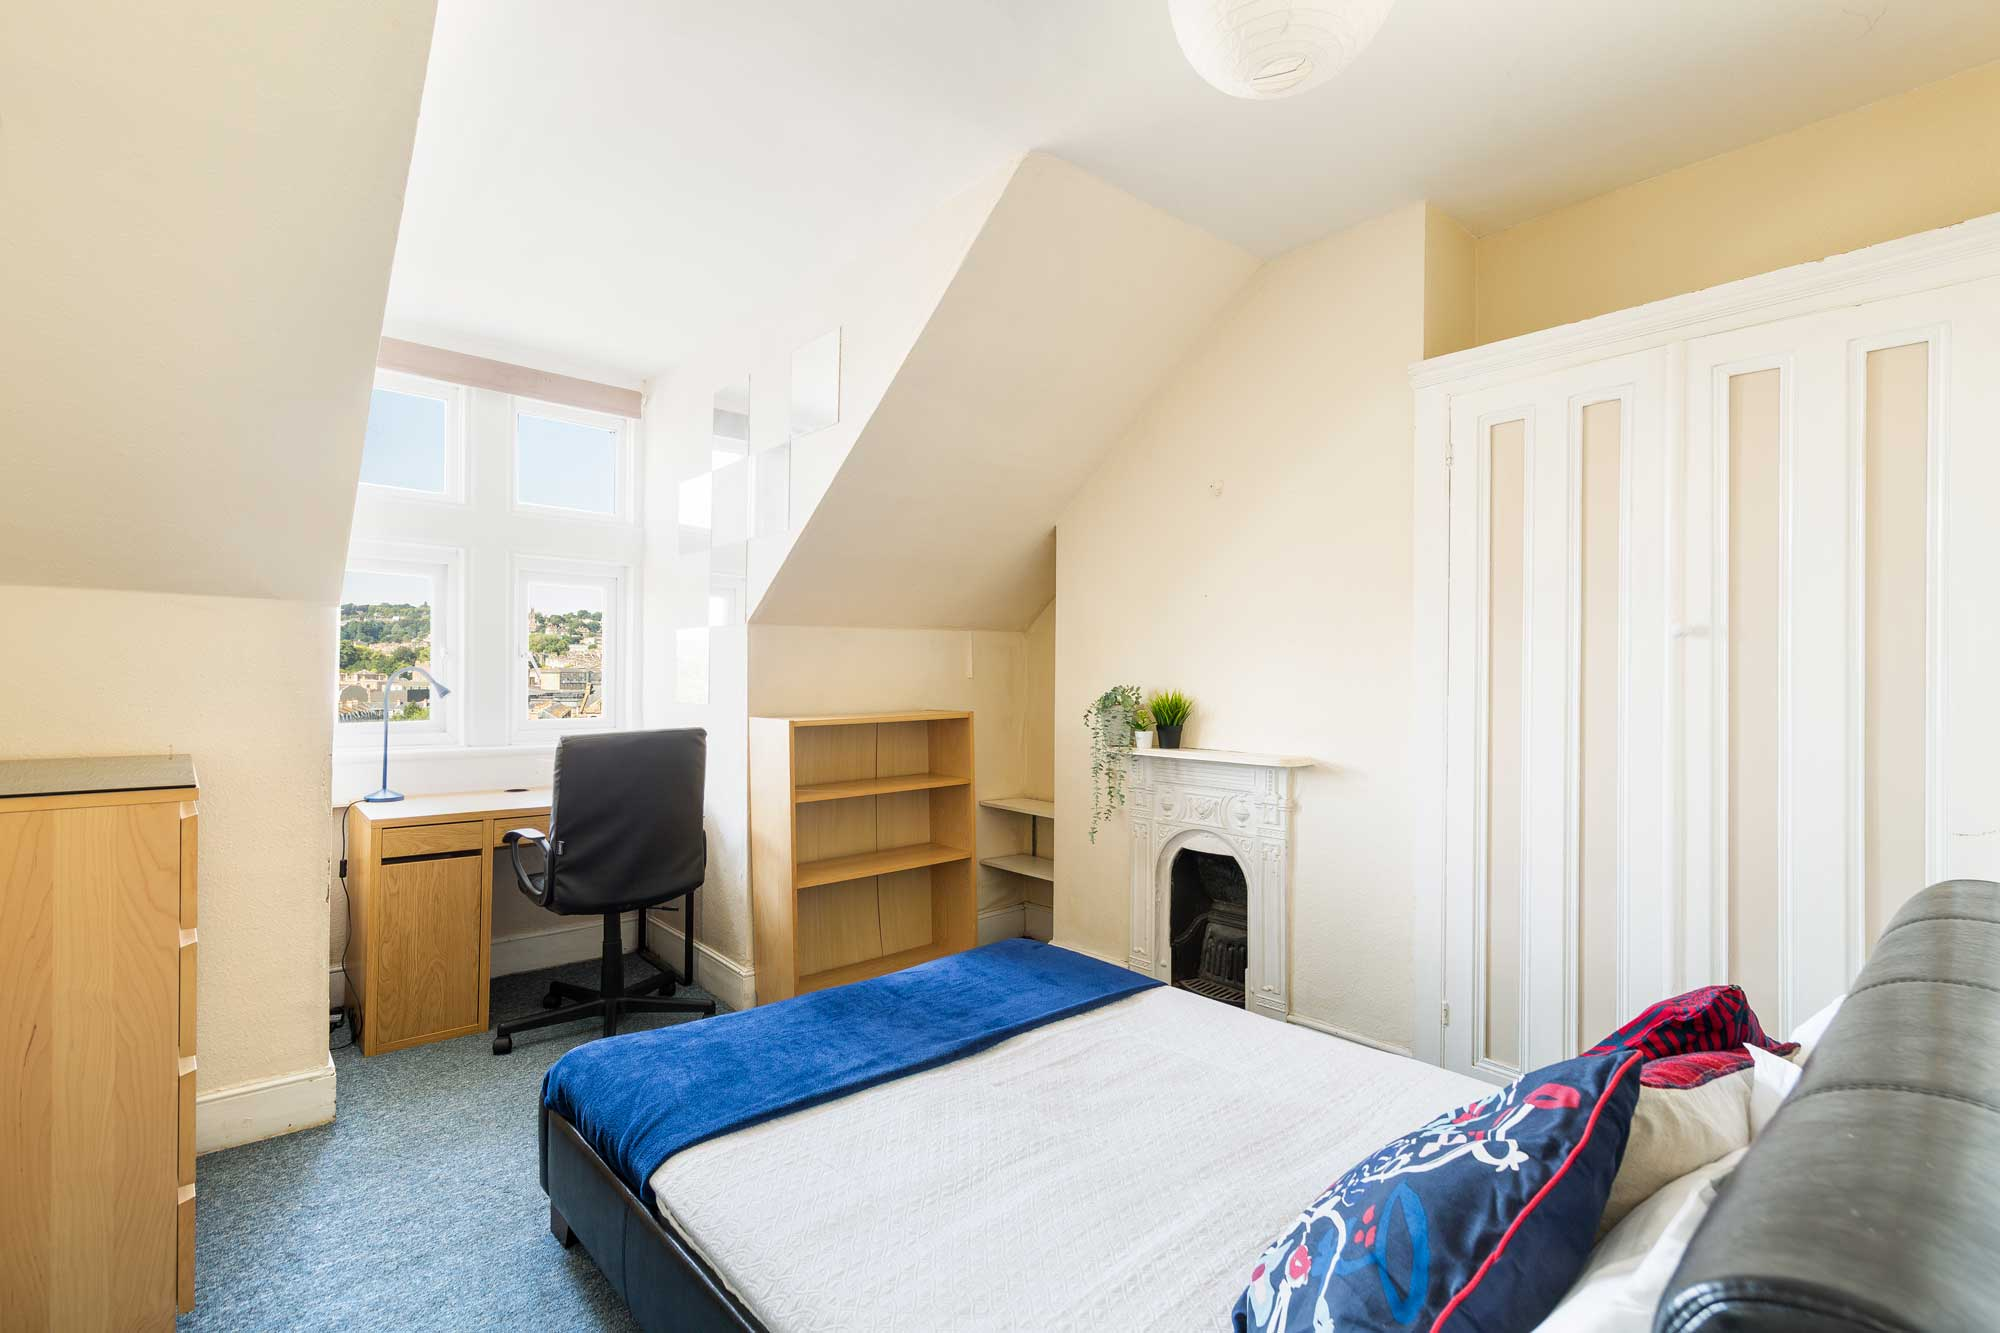 7 Bed House to rent to students at 89 Wells Road, Bath BA2 3AN